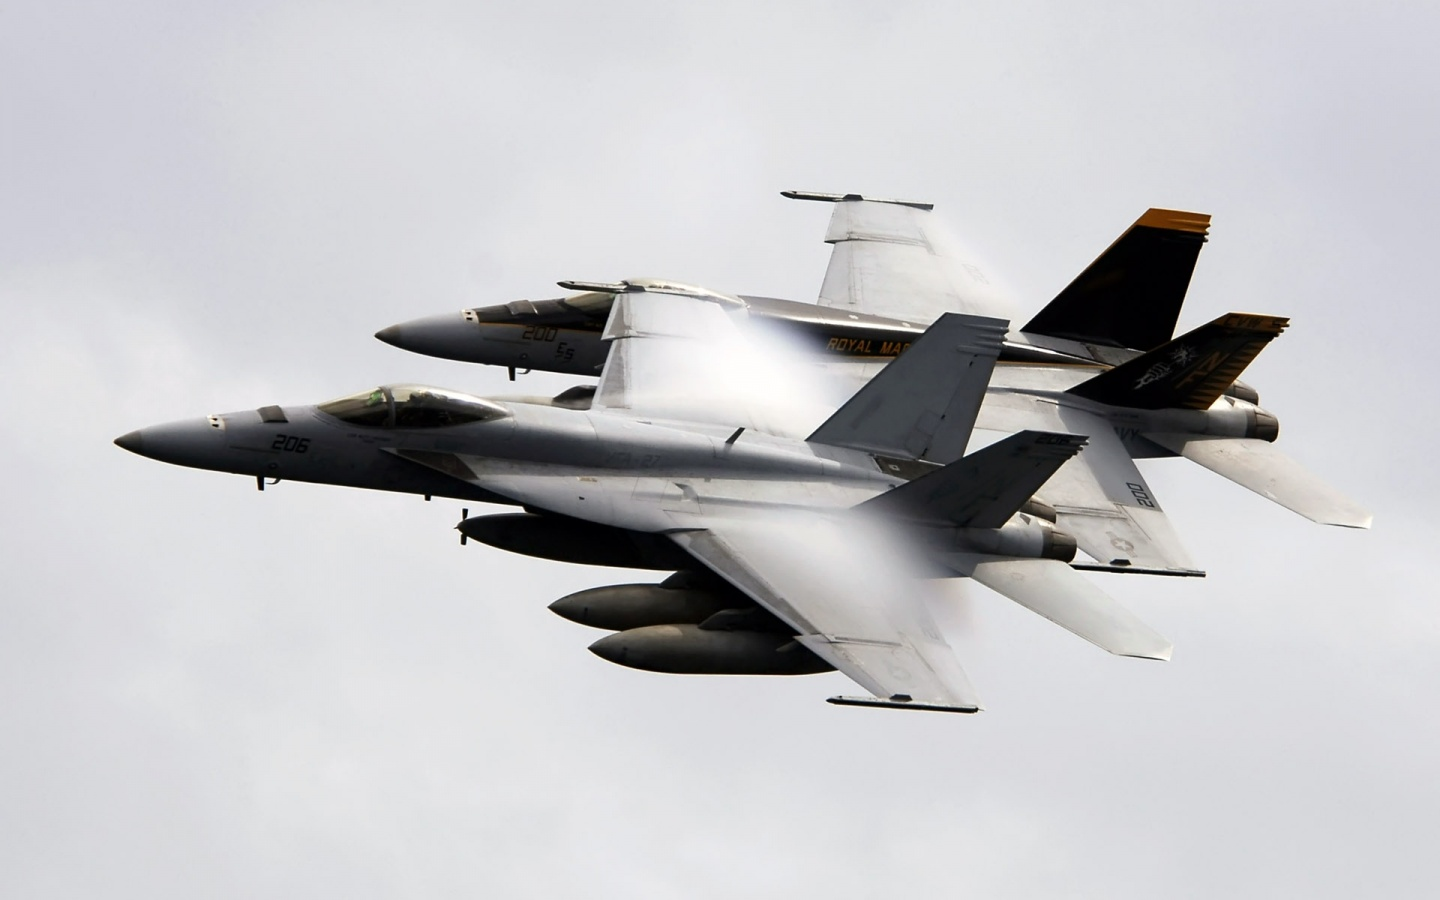 fa 18e super hornets wallpapers in jpg format for free download